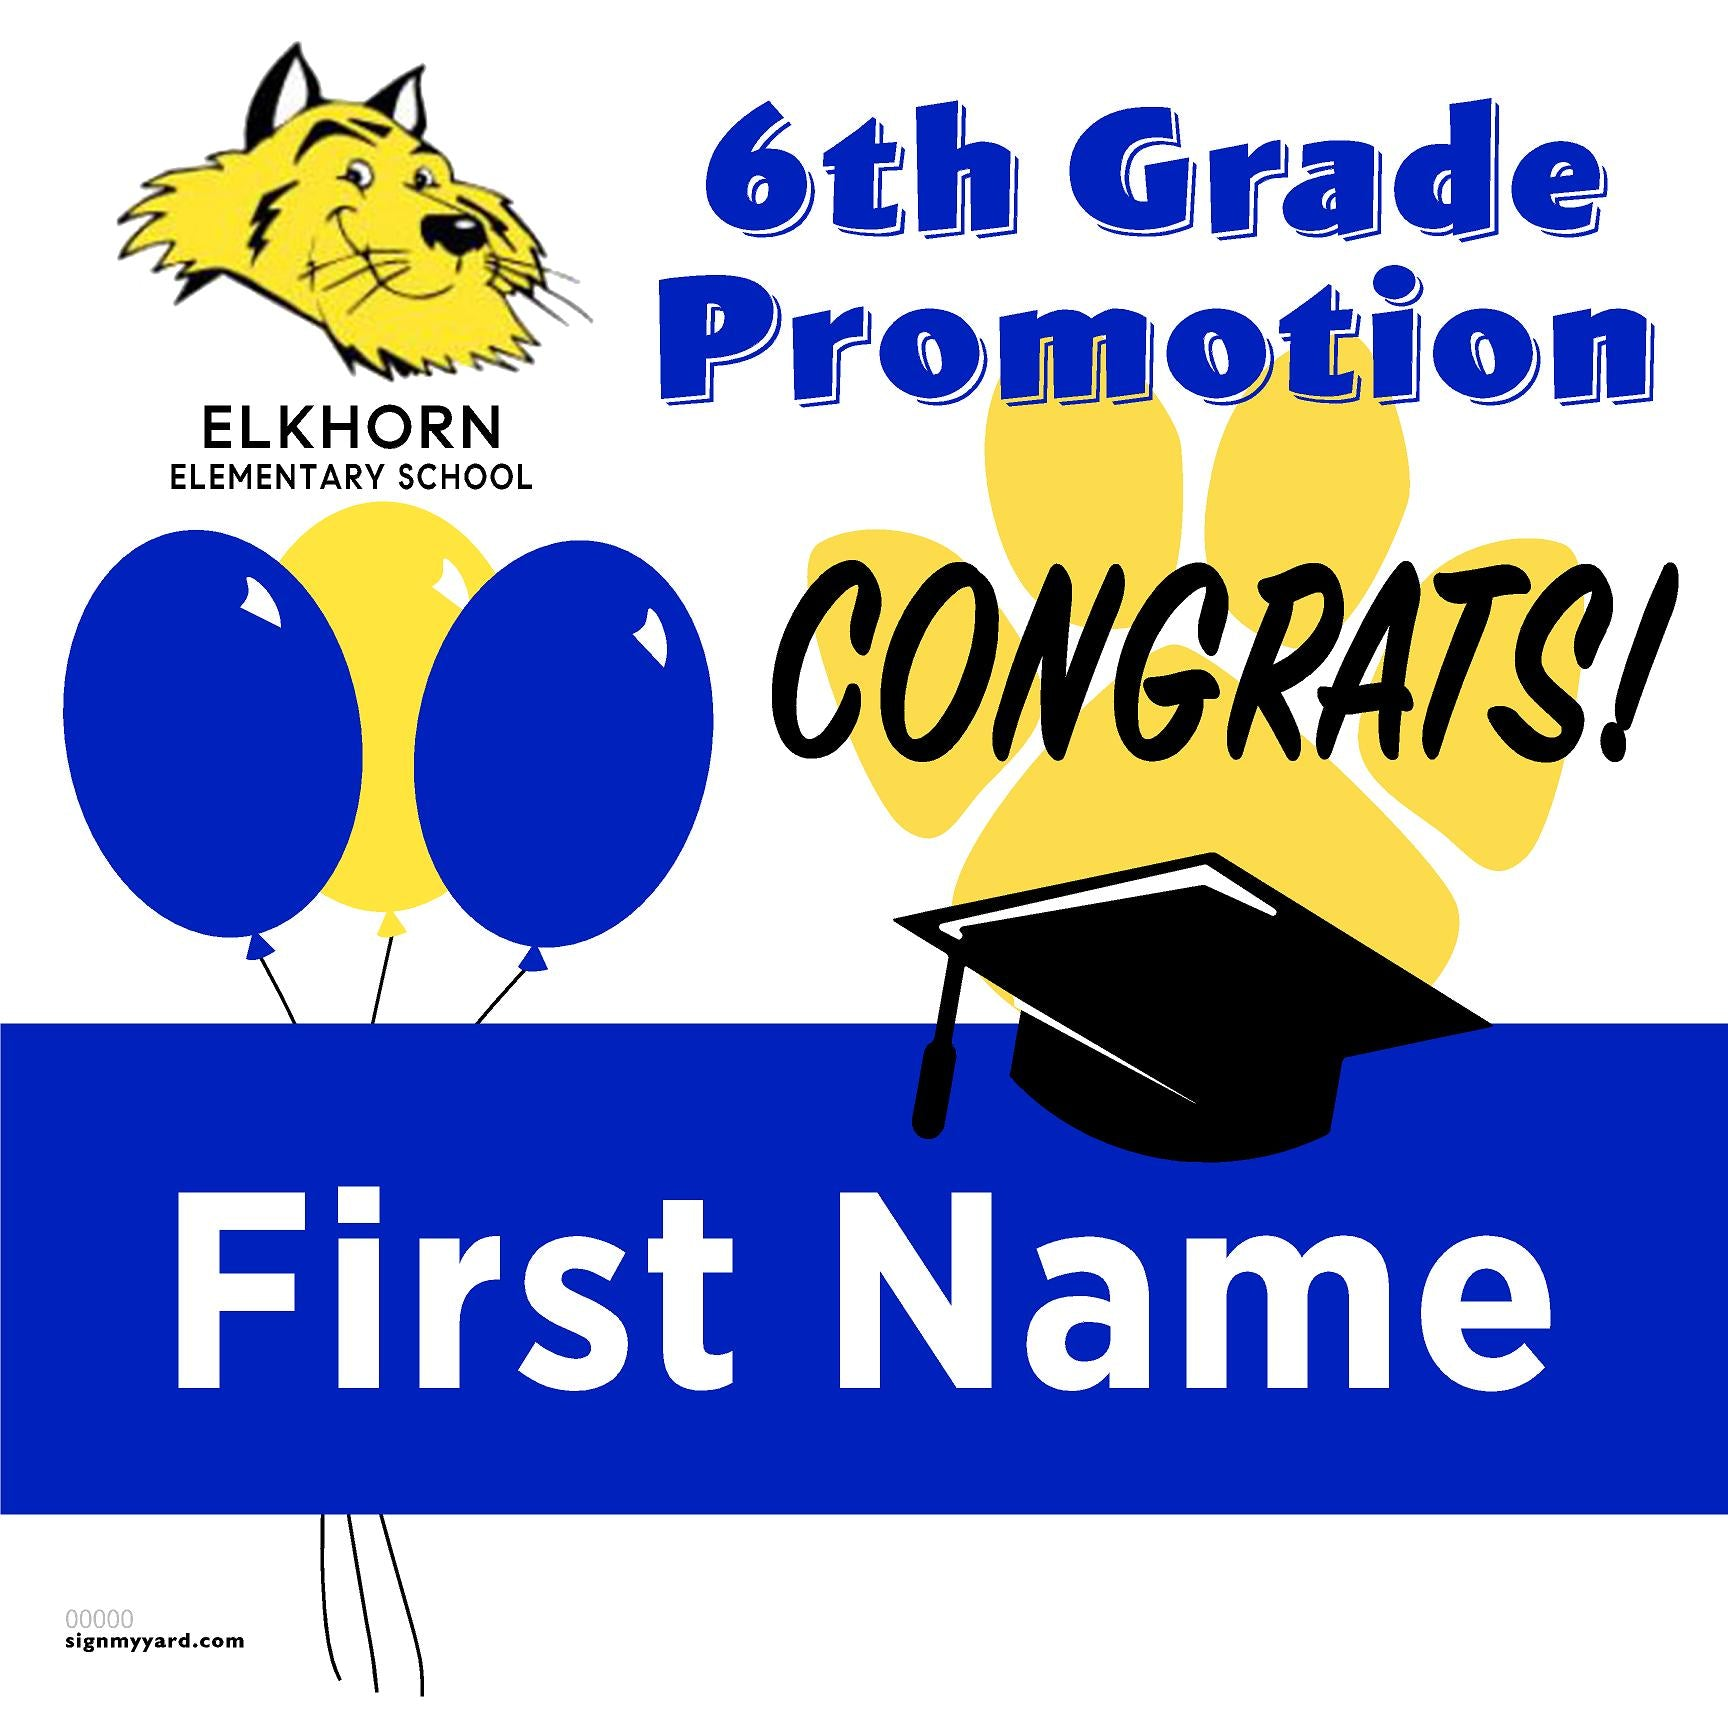 Elkhorn Elementary School 6th Grade Promotion 24x24 #shineon2027 Yard Sign (Option A)